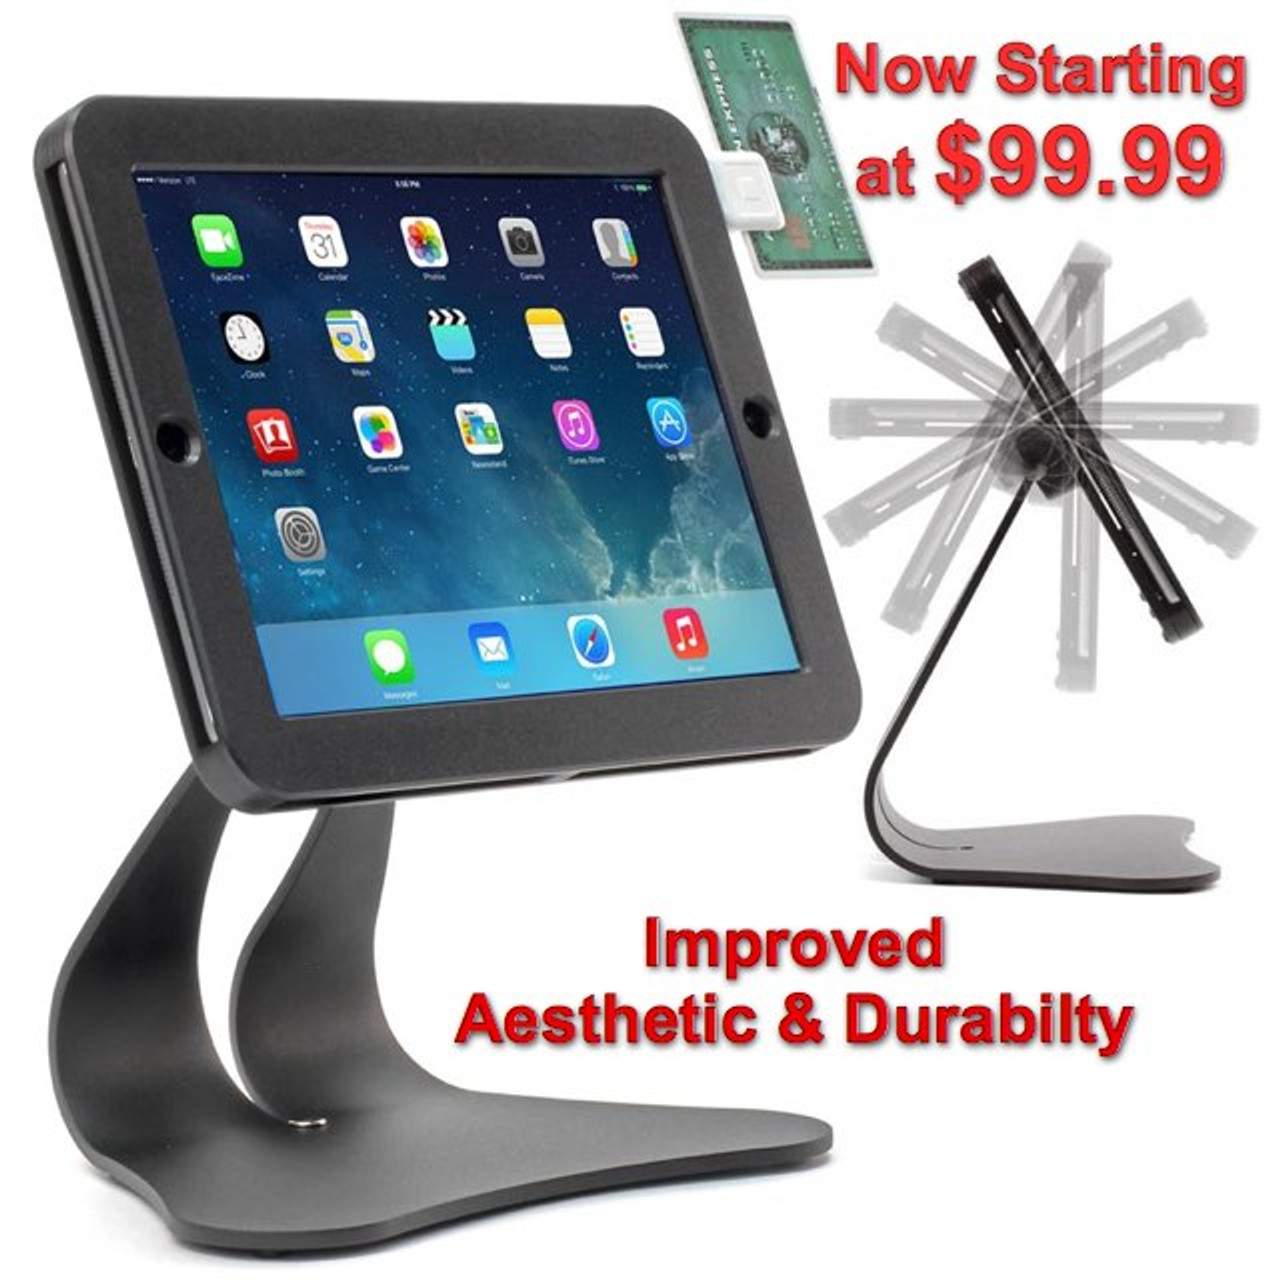 iPad Security Anti-Theft POS Stand & Mount New Price